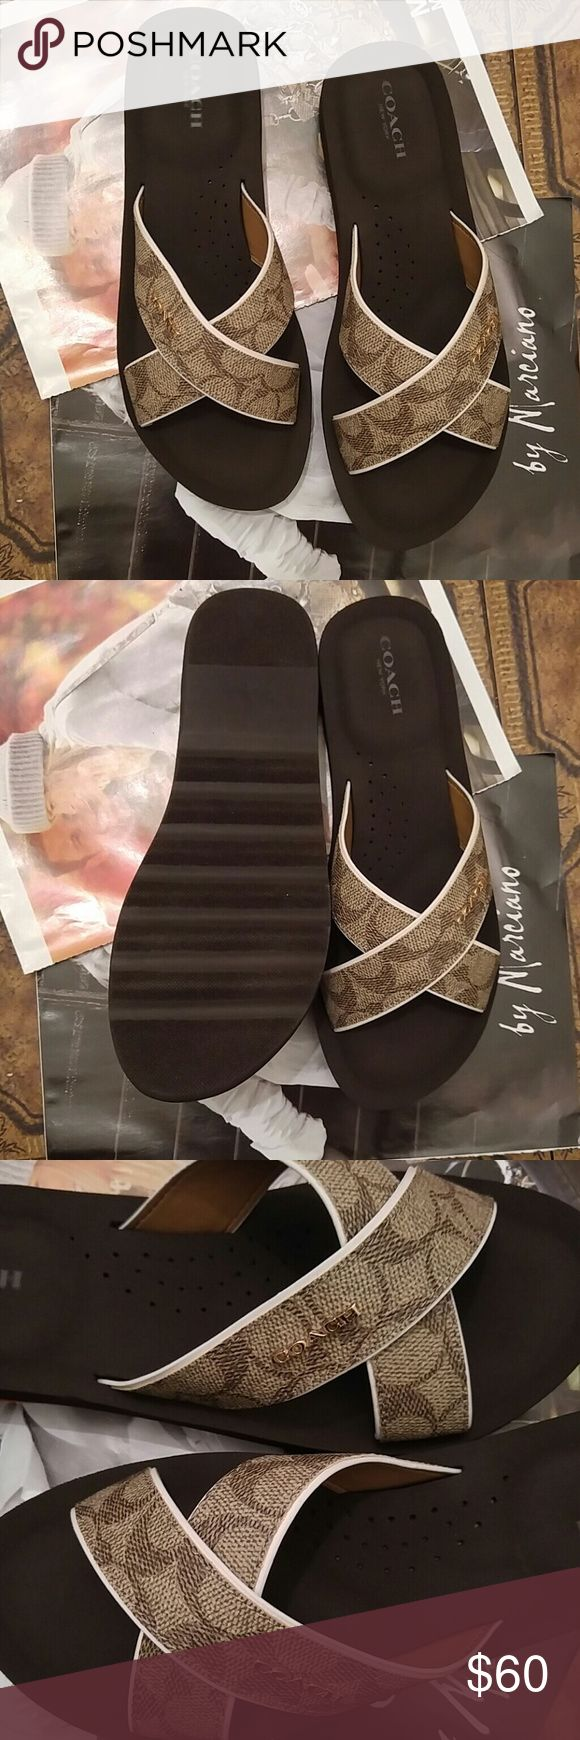 classic coach bags outlet fmie  Coach Janine sandals Brand new coach sandals! Open to reasonable offers!  Bundle for discounts